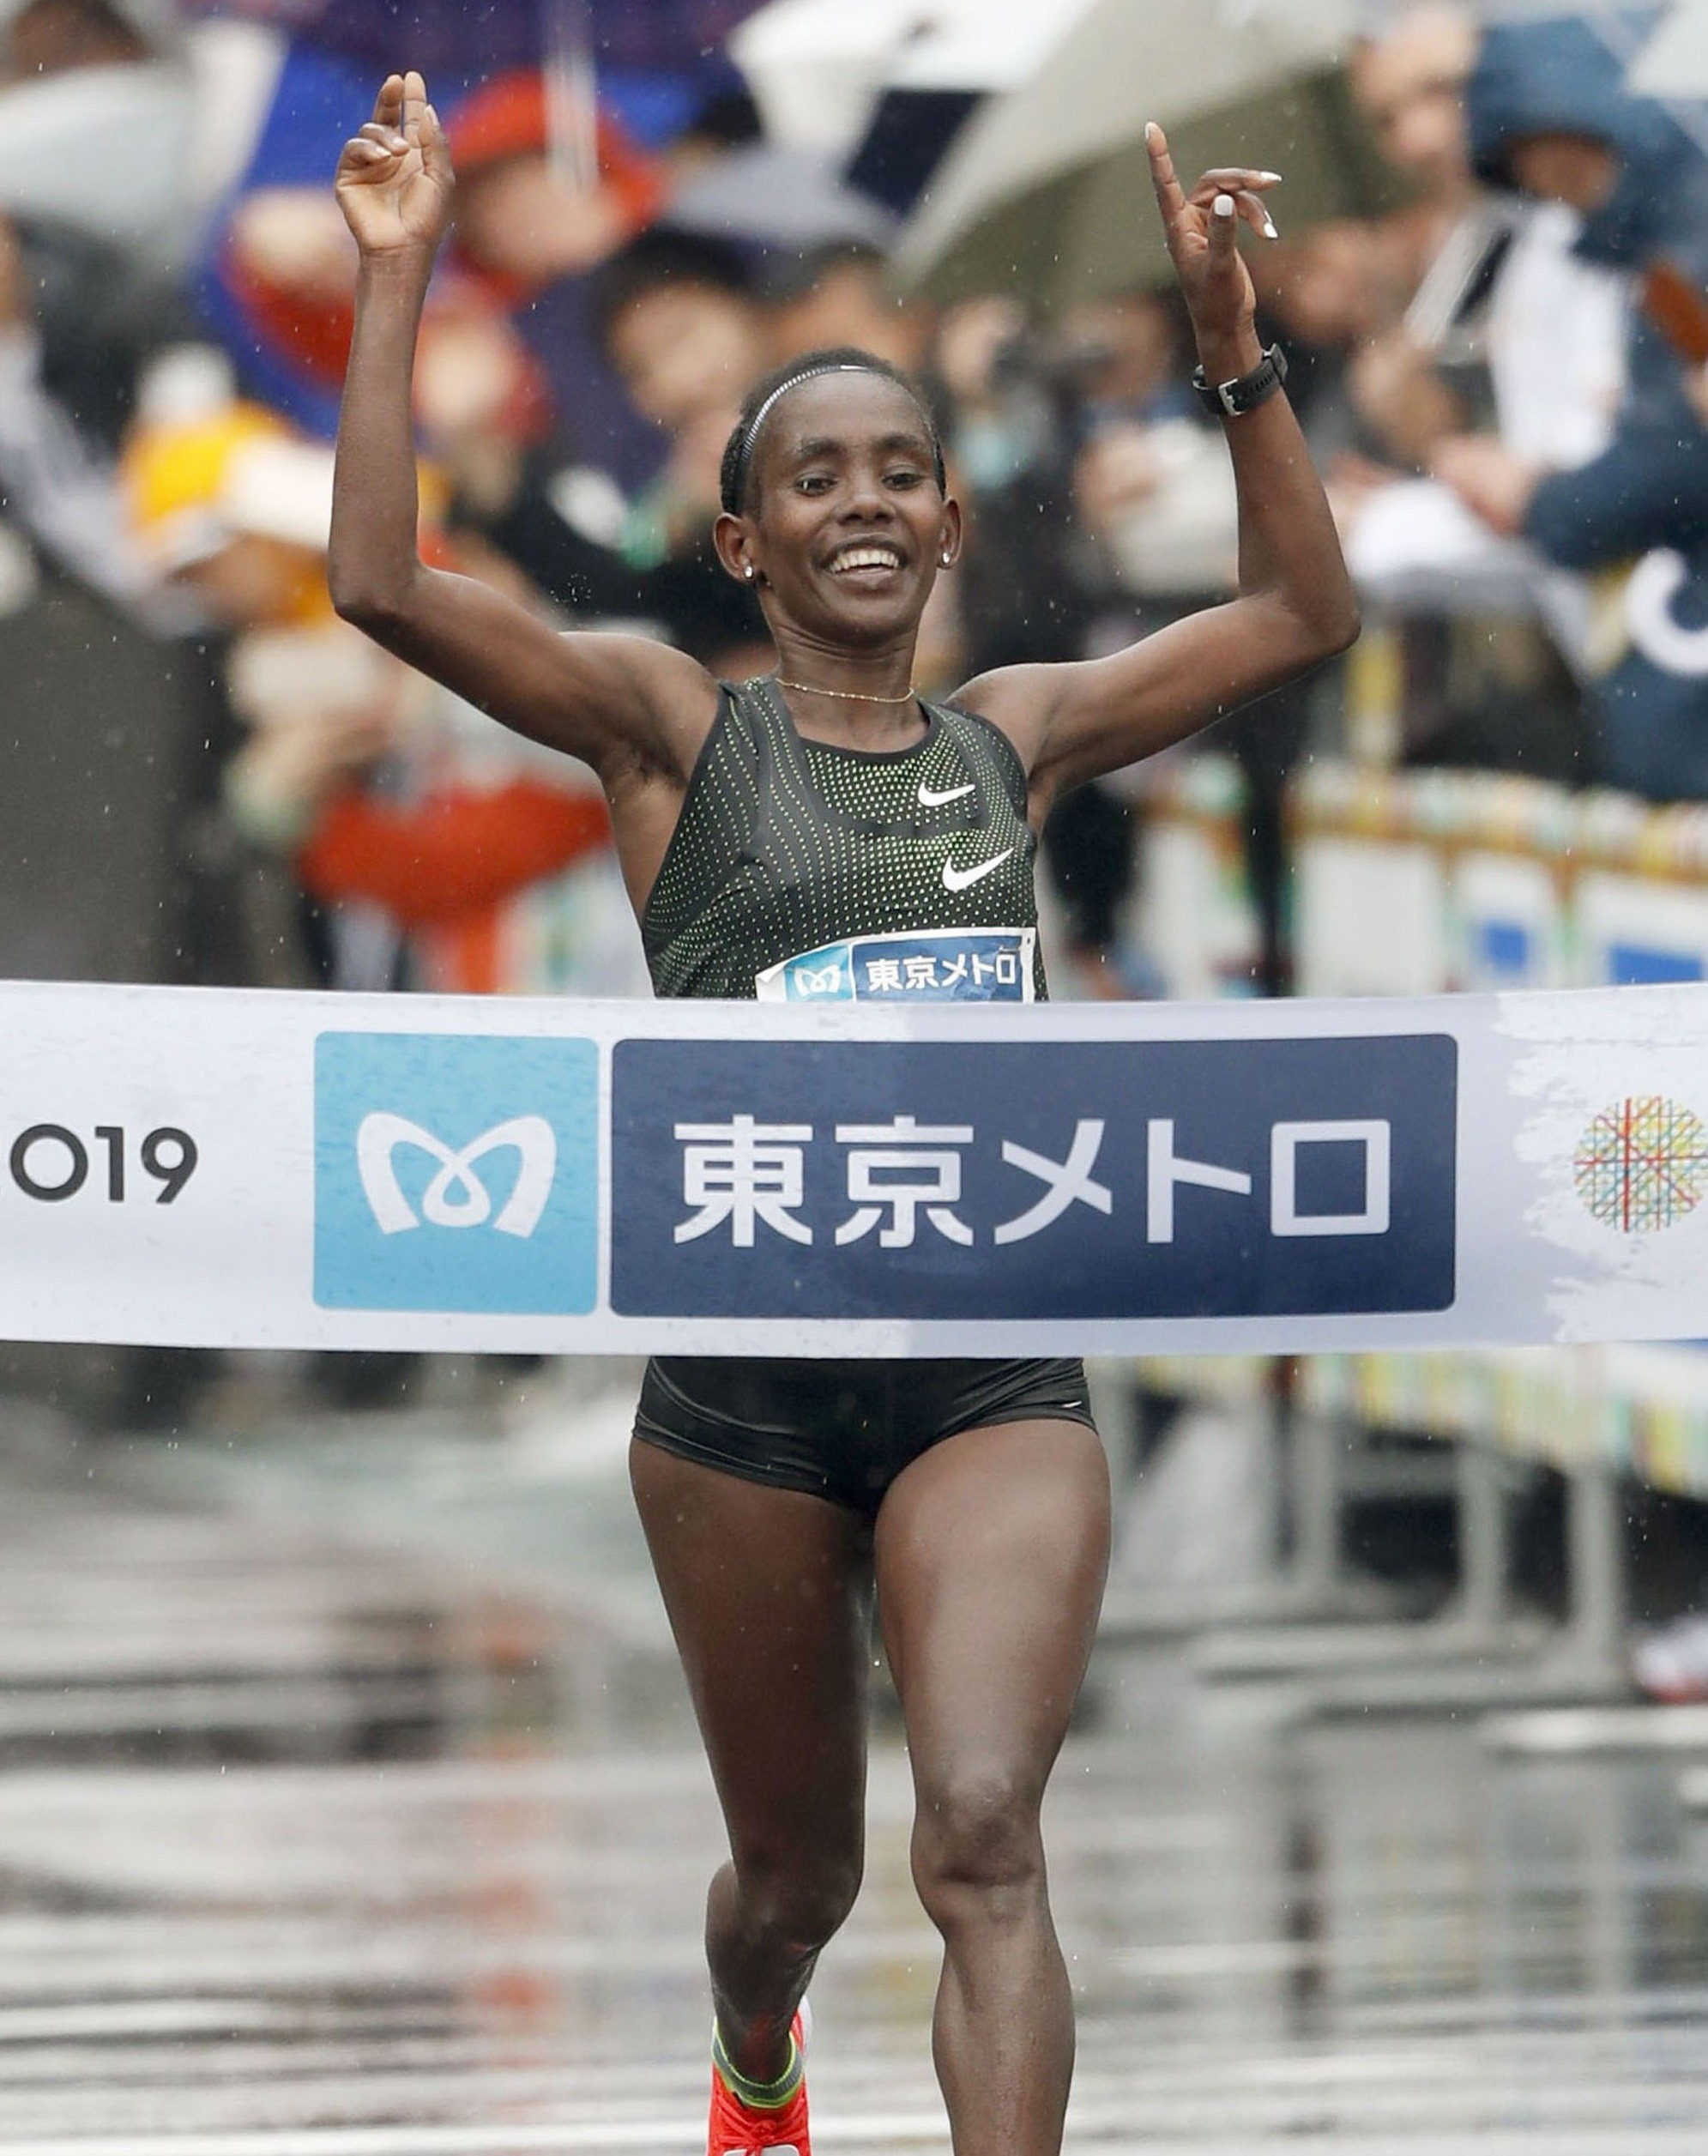 Defending champ Ruti Aga and last year's winner Birhanu Legese will be back for 2020 Tokyo Marathon